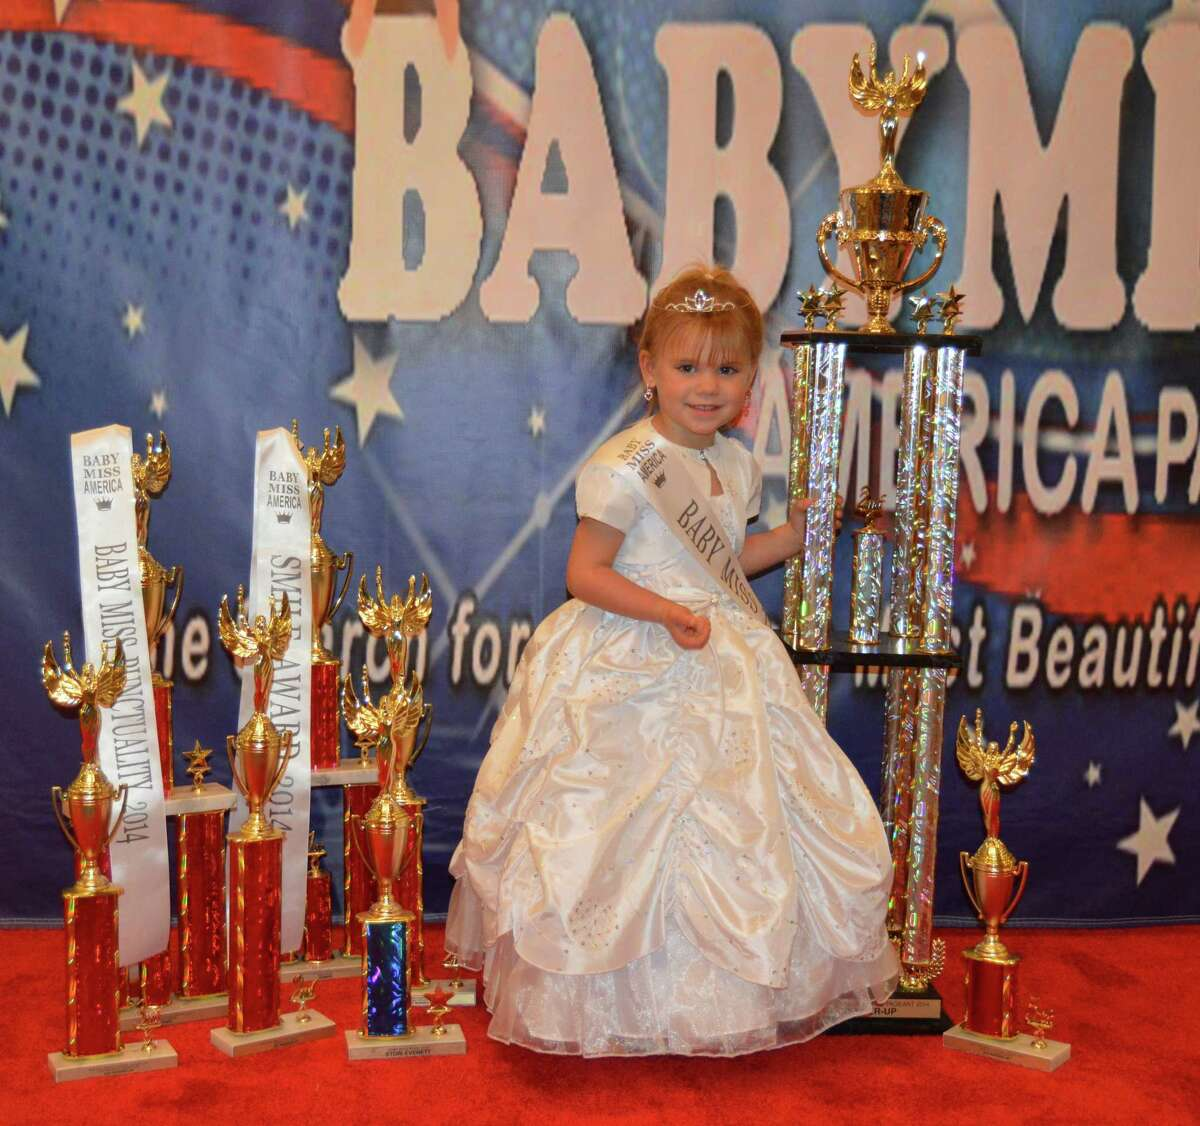 Texas contestants from the 2014 Baby Miss America National Pageant held Thanksgiving weekend at the Marriott North Houston.This is Baby Miss Texas, who was the 1st runner-up and 2nd place winner in the Baby Miss America division.